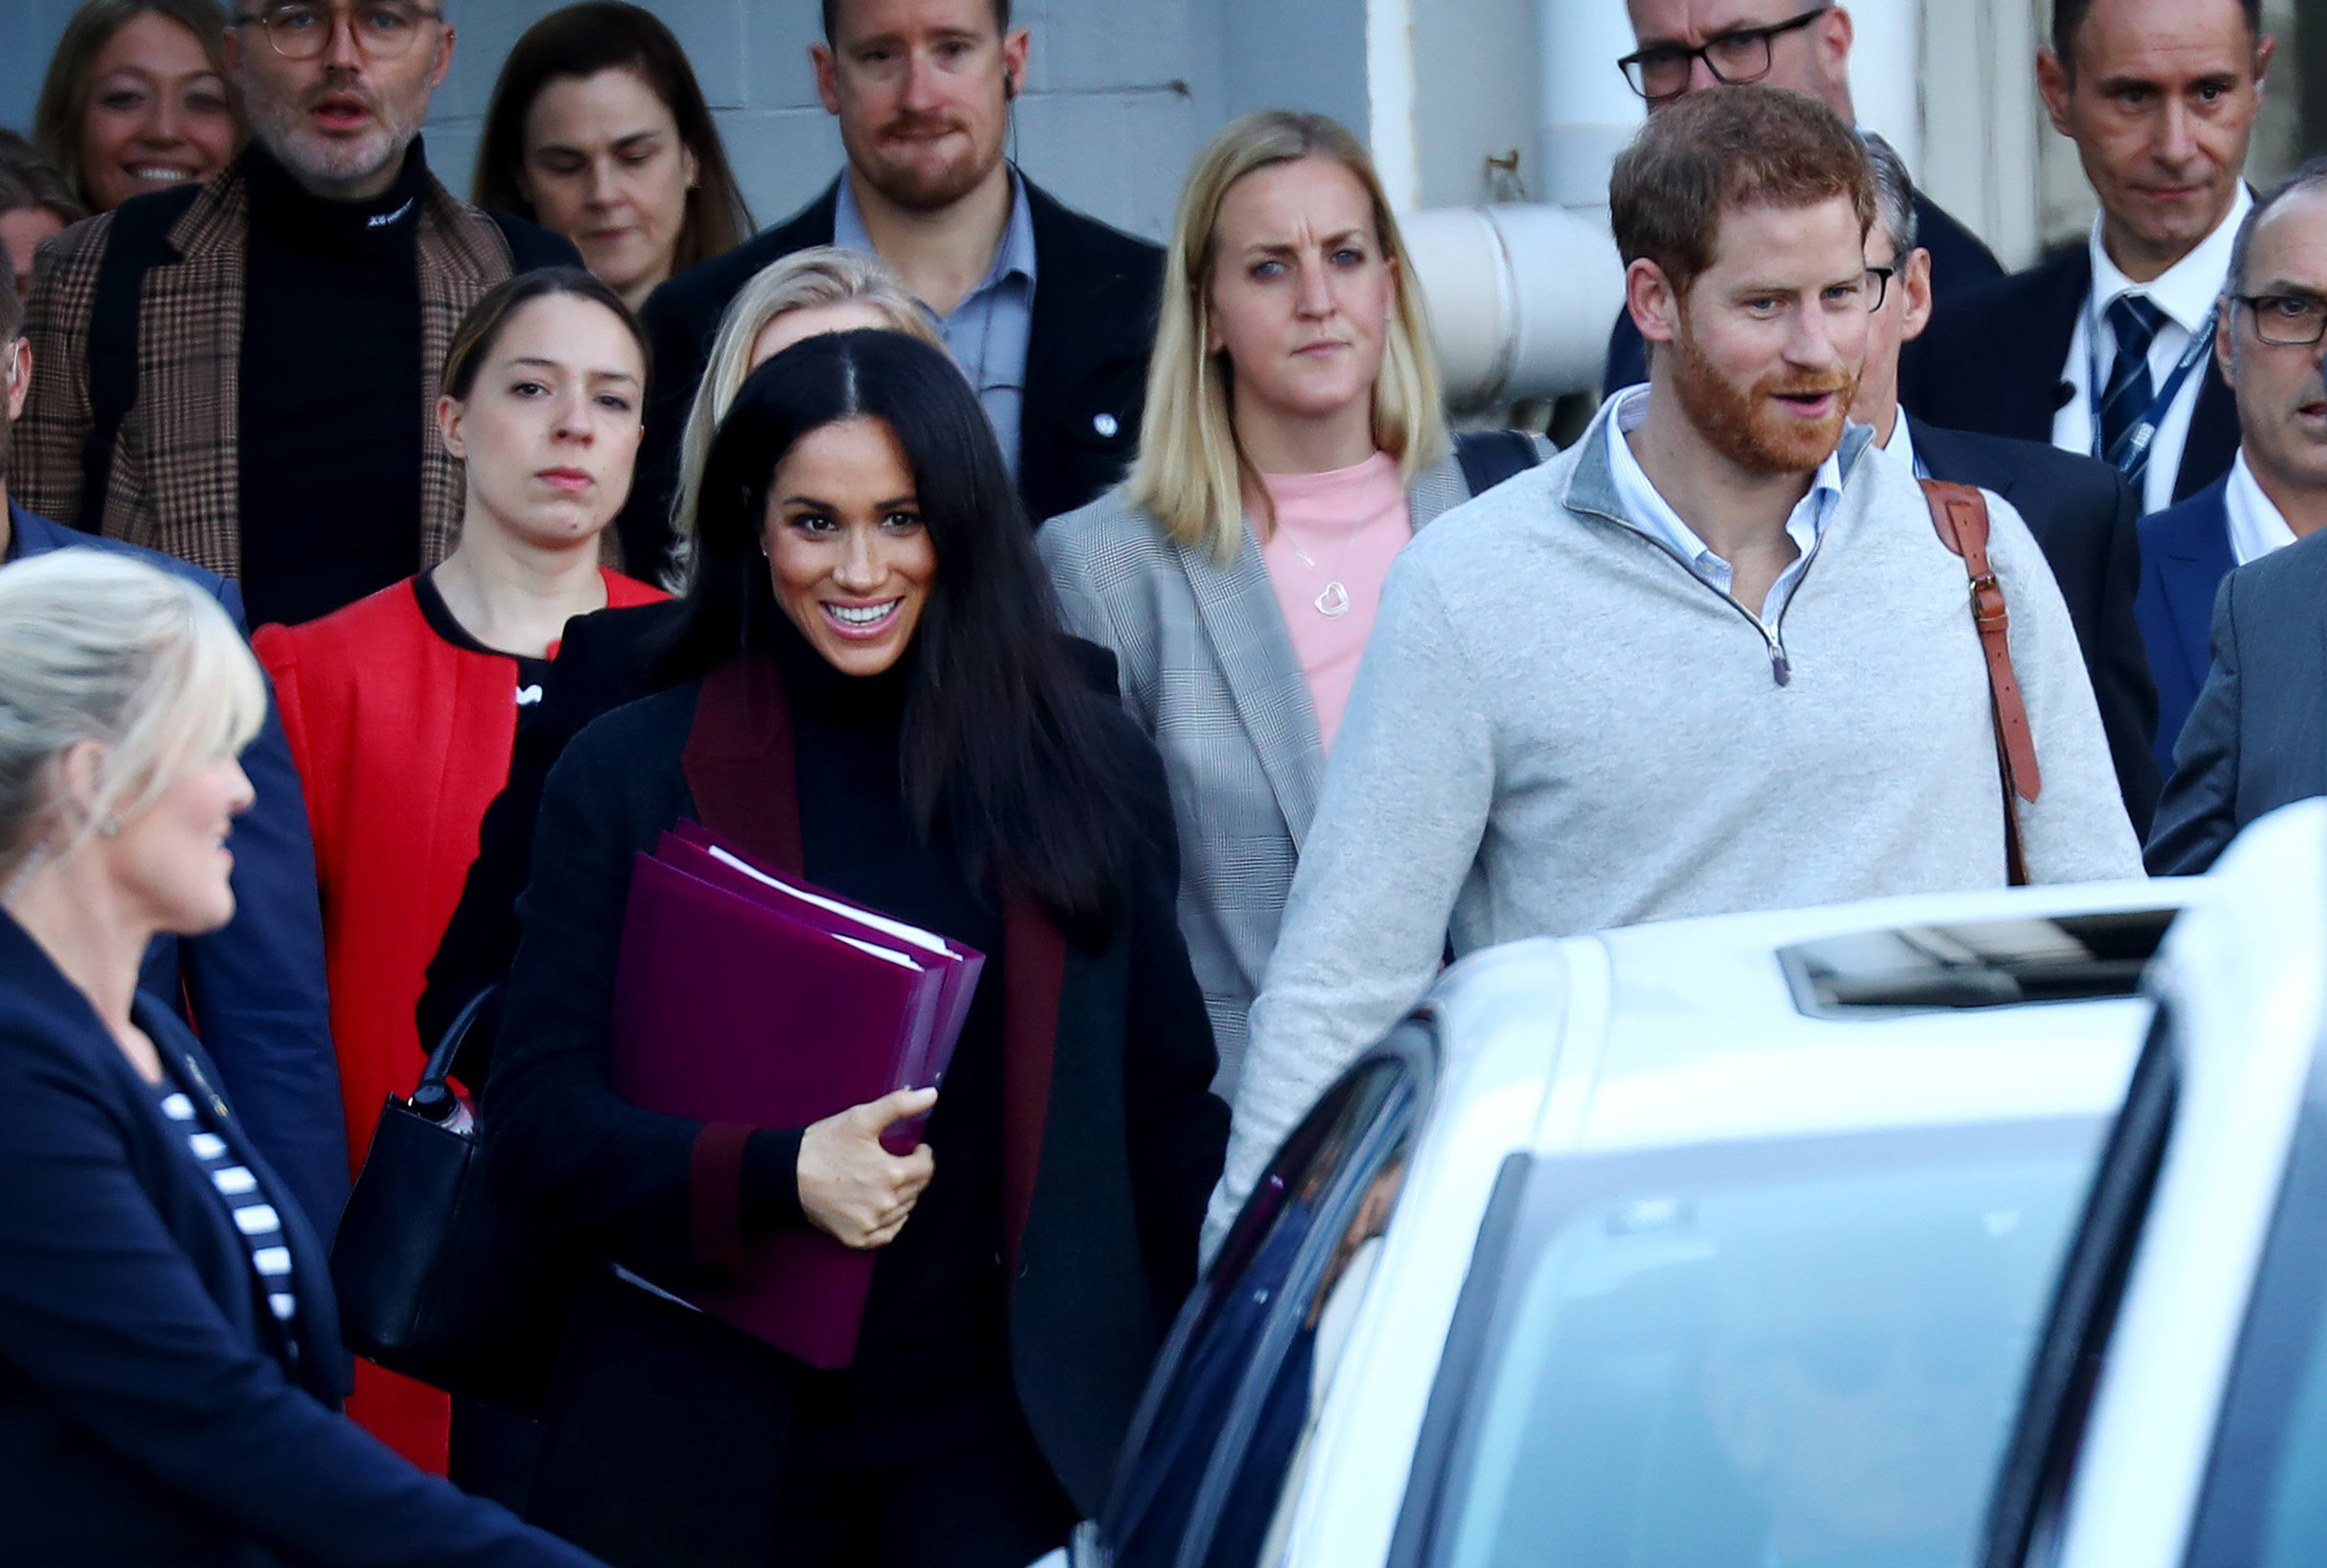 The royal baby will thrive off taxpayers as a third of U.K. kids live in poverty